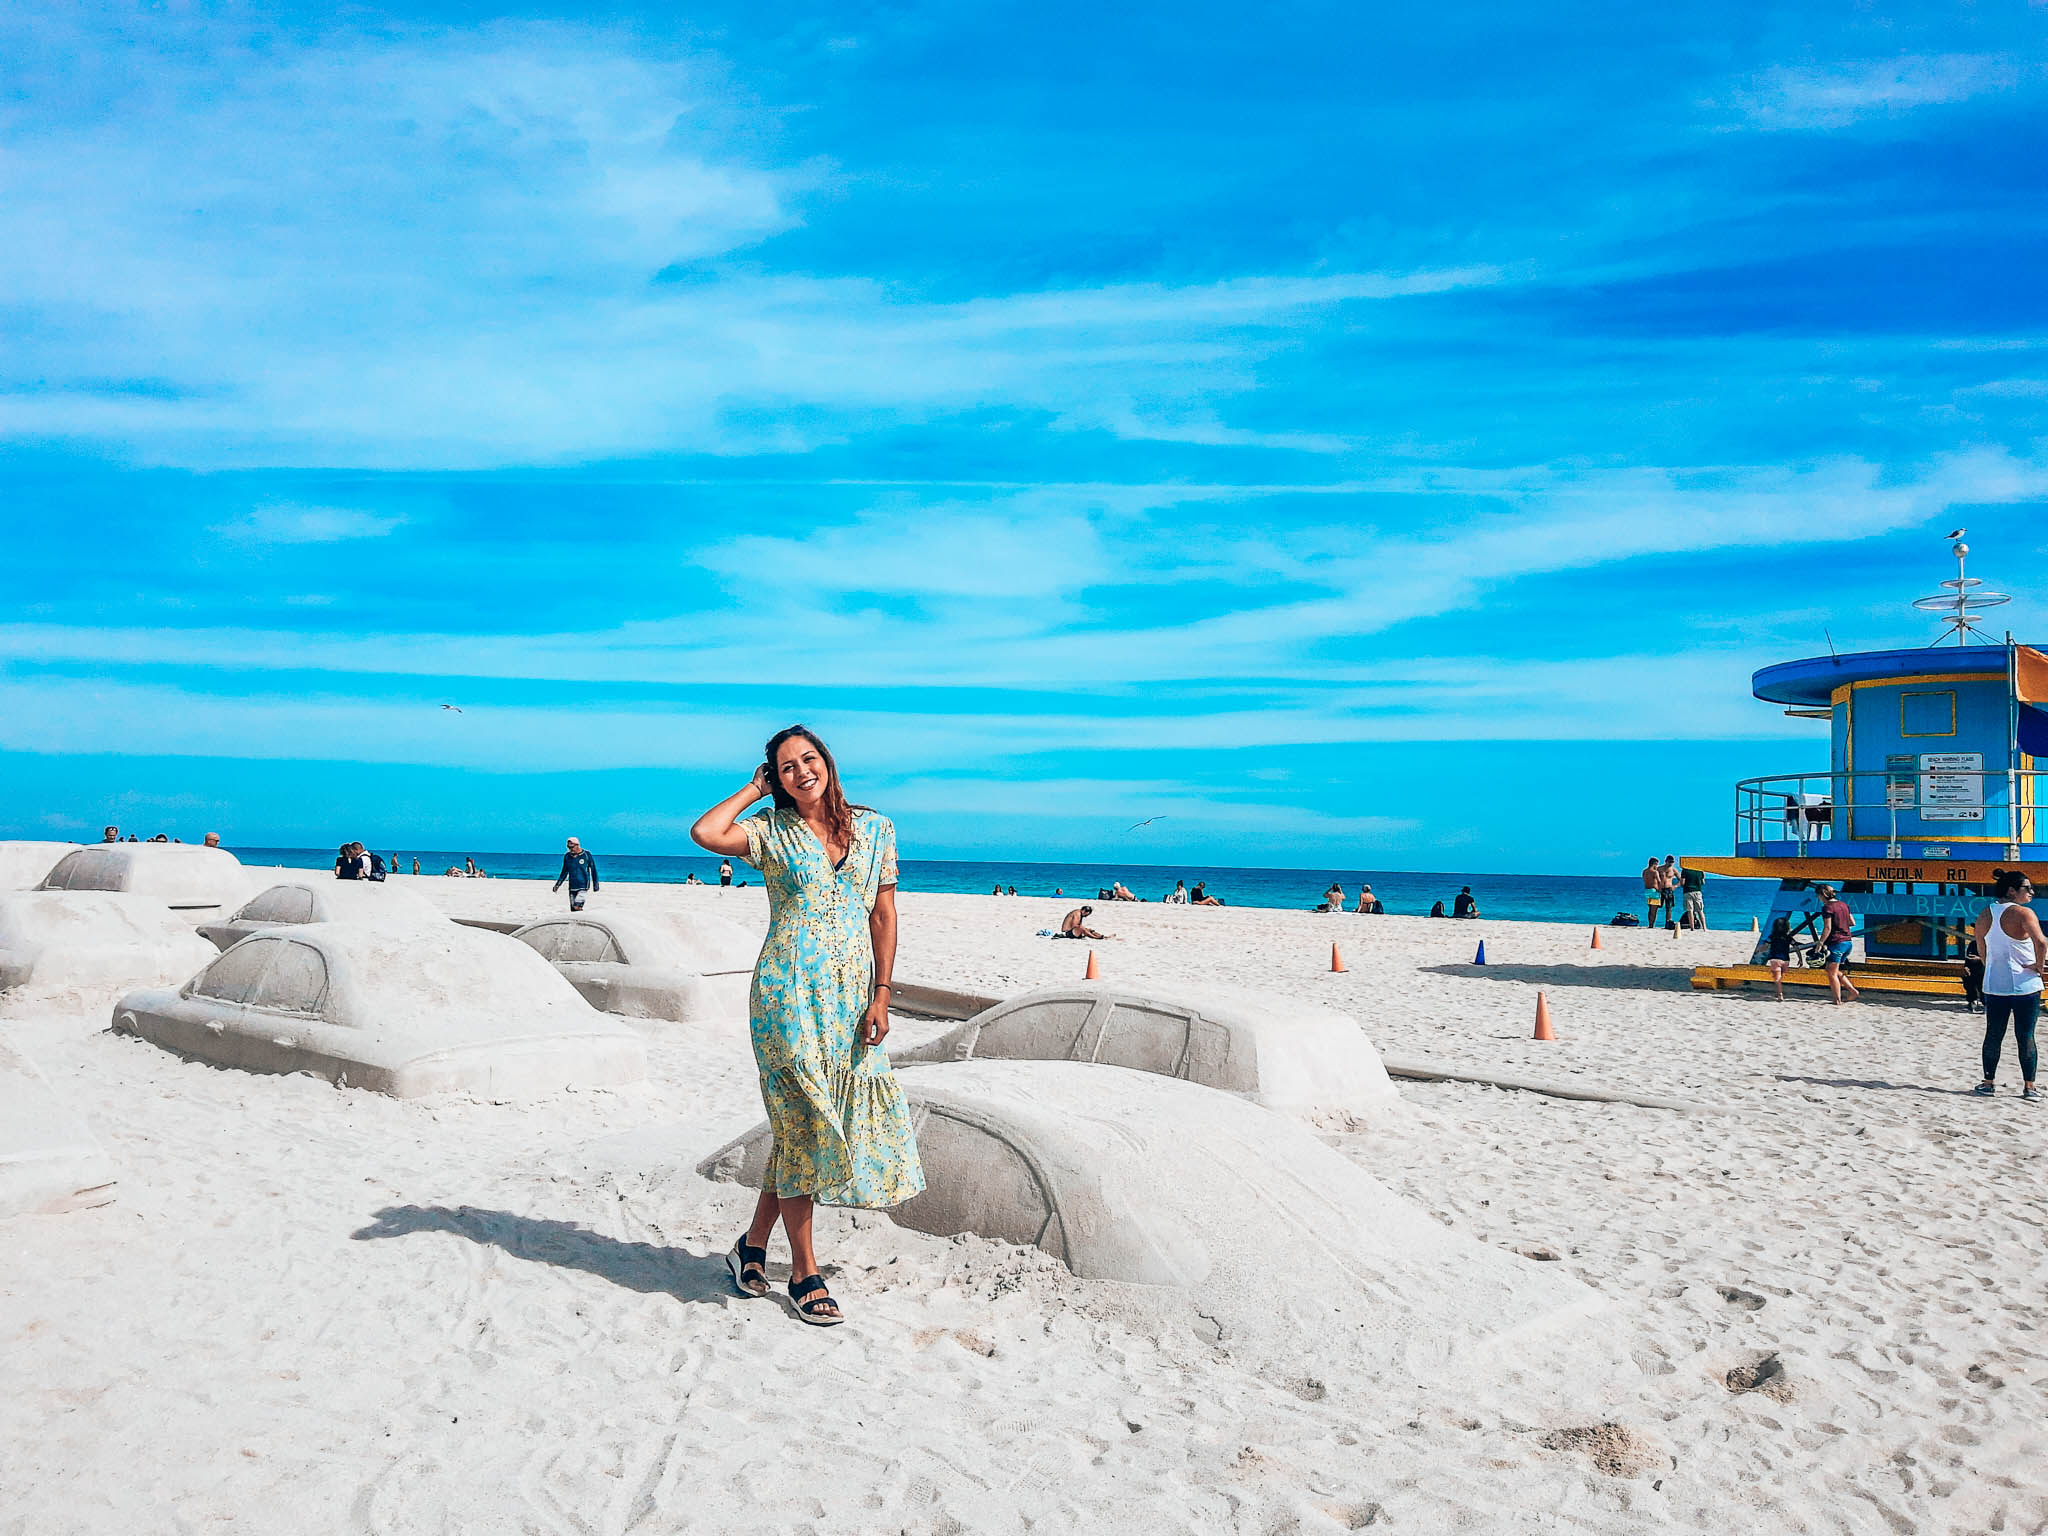 Sarah Fay infront of Sand sculptures of taxis made in sand. Art Basel Installation on beach.